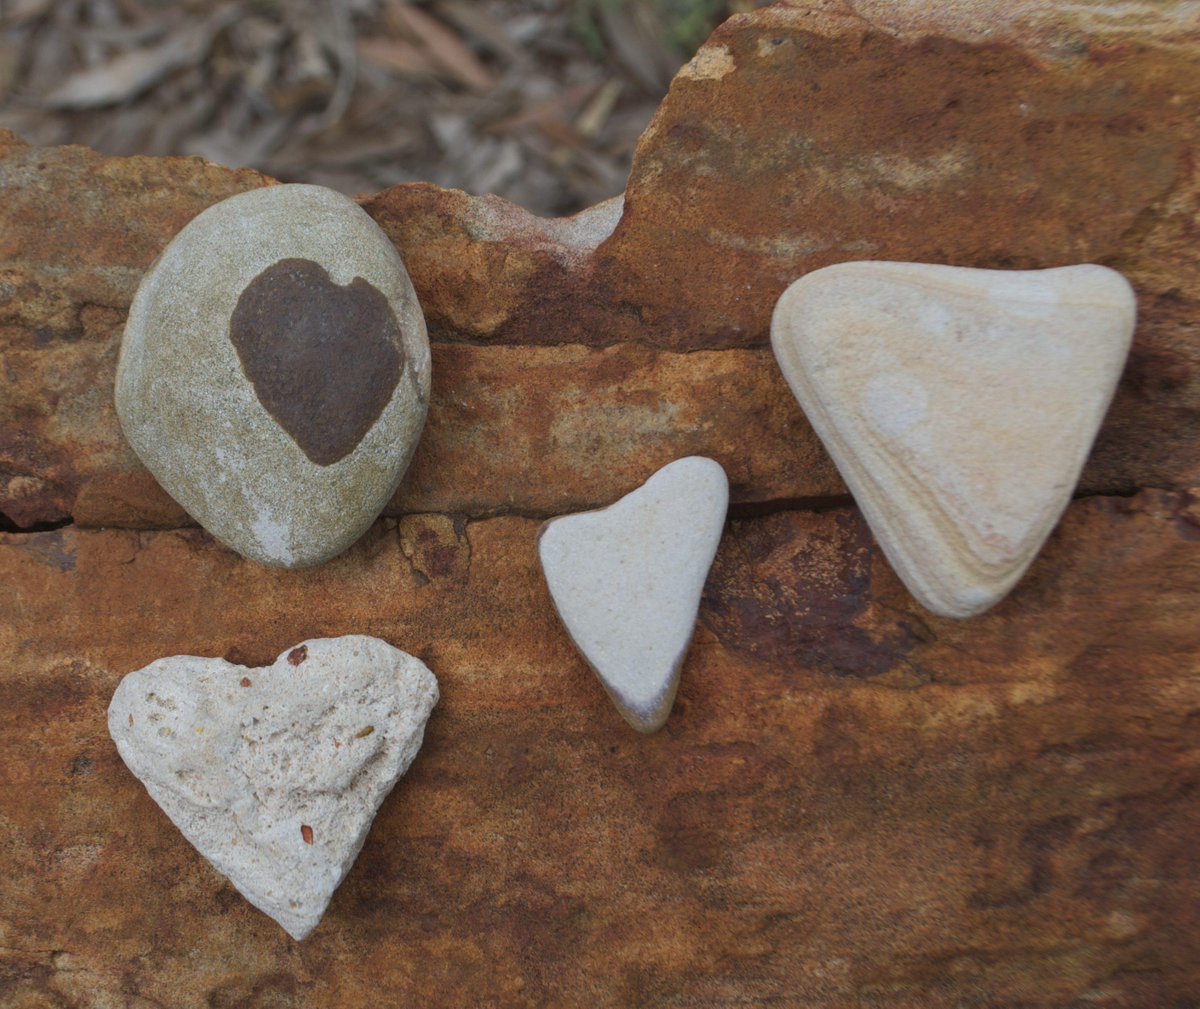 #heart-shaped pebbles from the #DinosaurCoast. We love you Broome! @implexidens #uq @Loyal2mal http://t.co/xrVIGi43hh